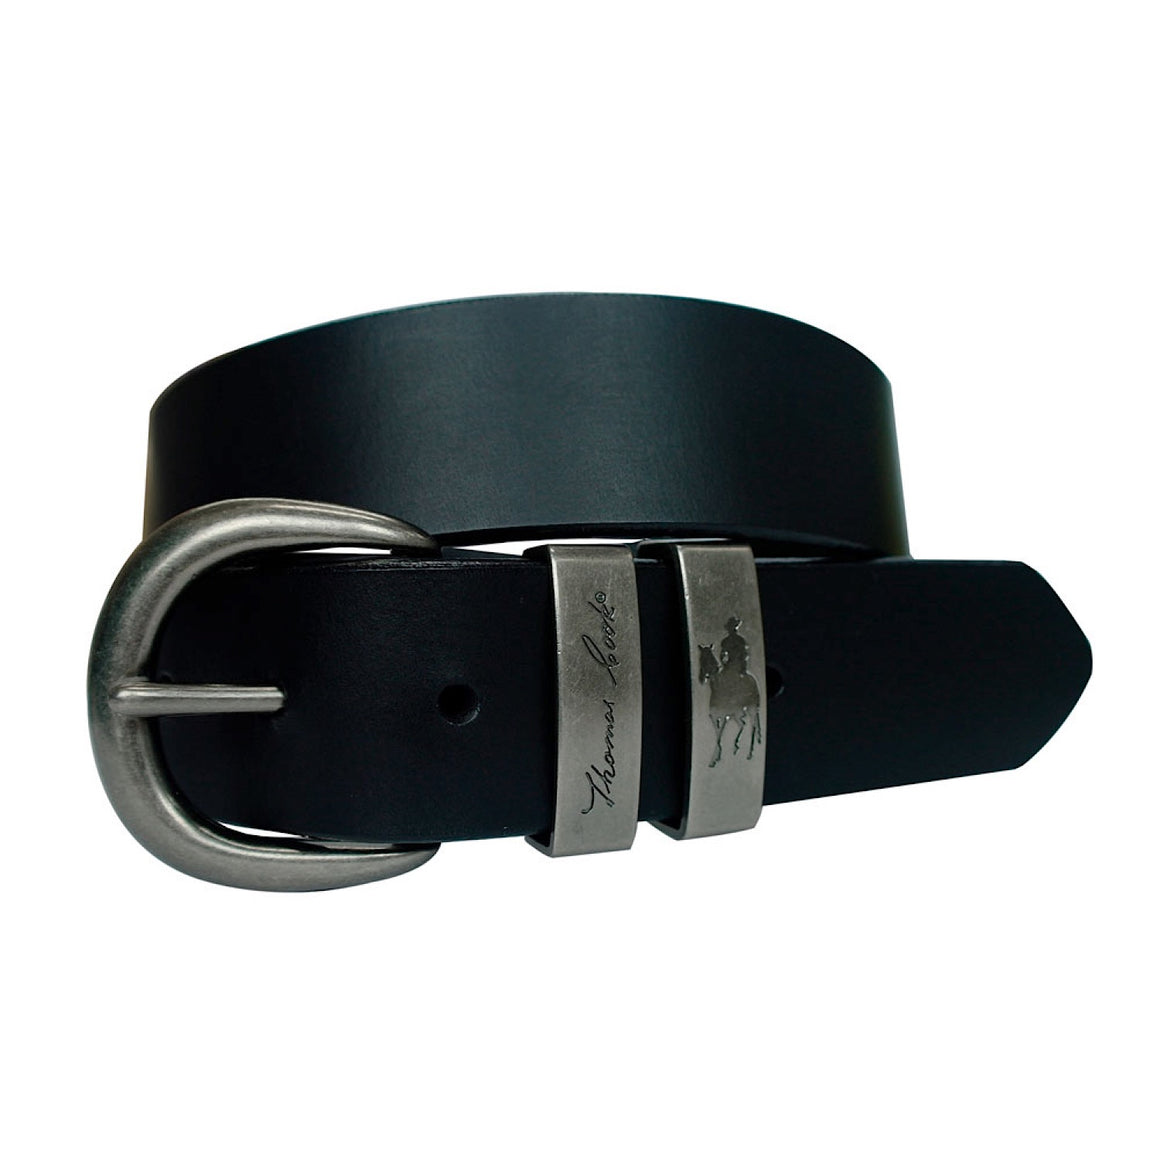 Thomas Cook Silver Twin Keeper Belt Black